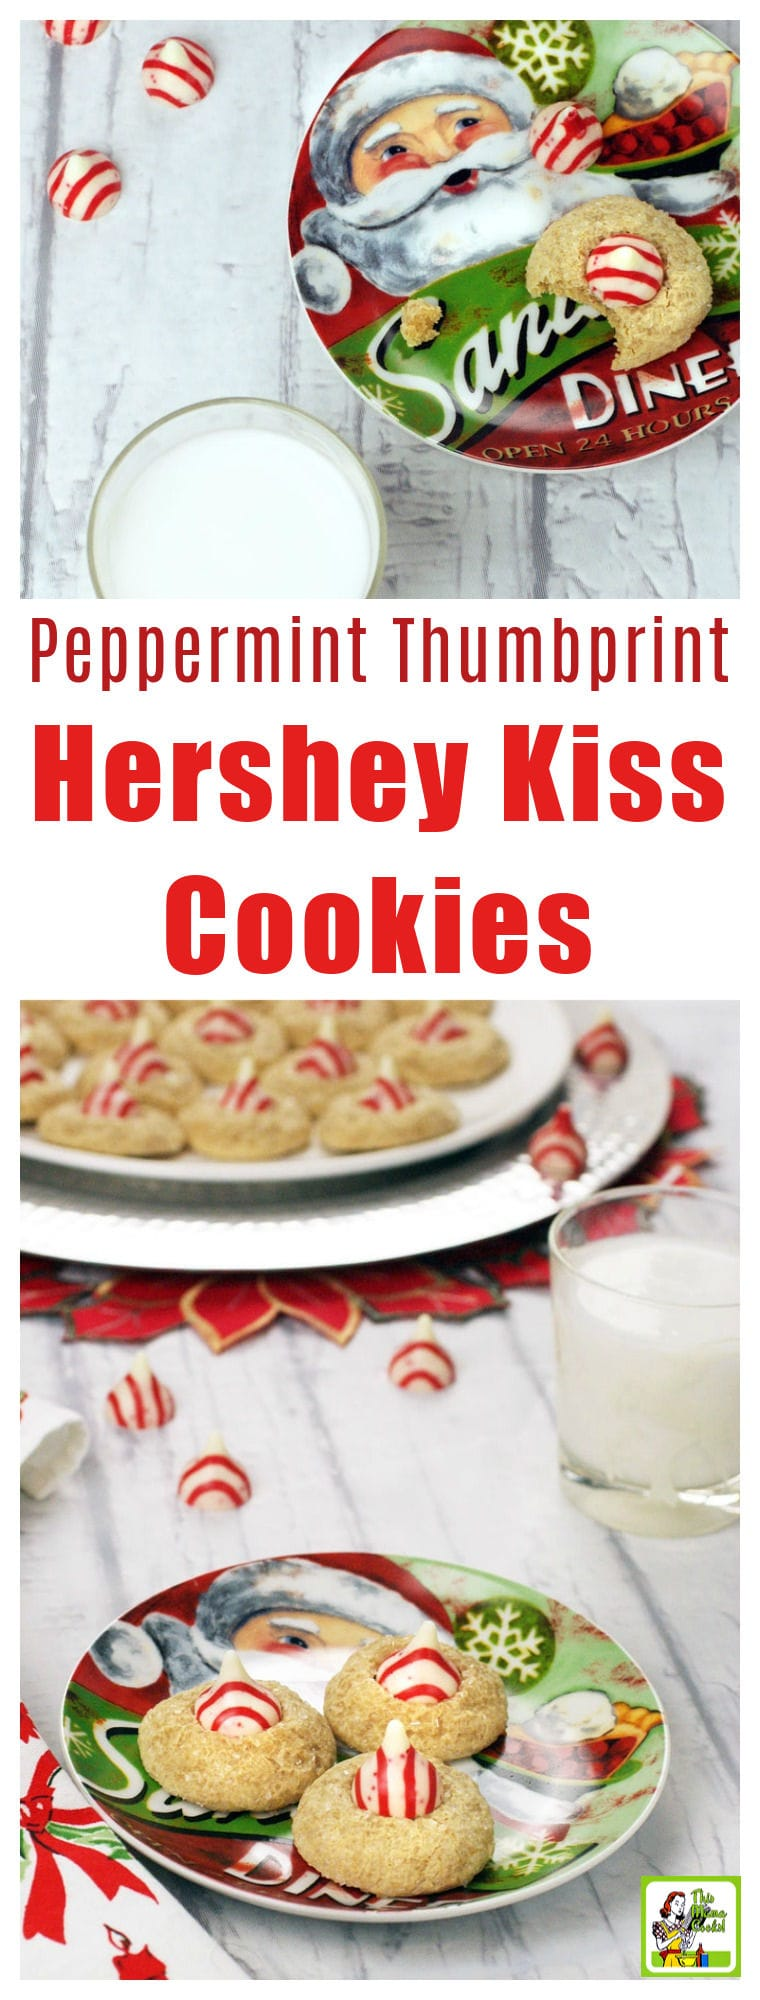 These Peppermint Thumbprint Hershey Kiss Cookies are buttery and soft. Hershey Kiss sugar cookies are gluten free and easy to make for holiday cookie swaps. This thumbprint cookies with Hershey Kisses recipe comes with dairy free substitutions. These cookies with Hershey kiss inside can be made in 40 minutes or less. #glutenfree #glutenfreerecipes #cookies #baking #sugarcookies #holidaybaking #dairyfree